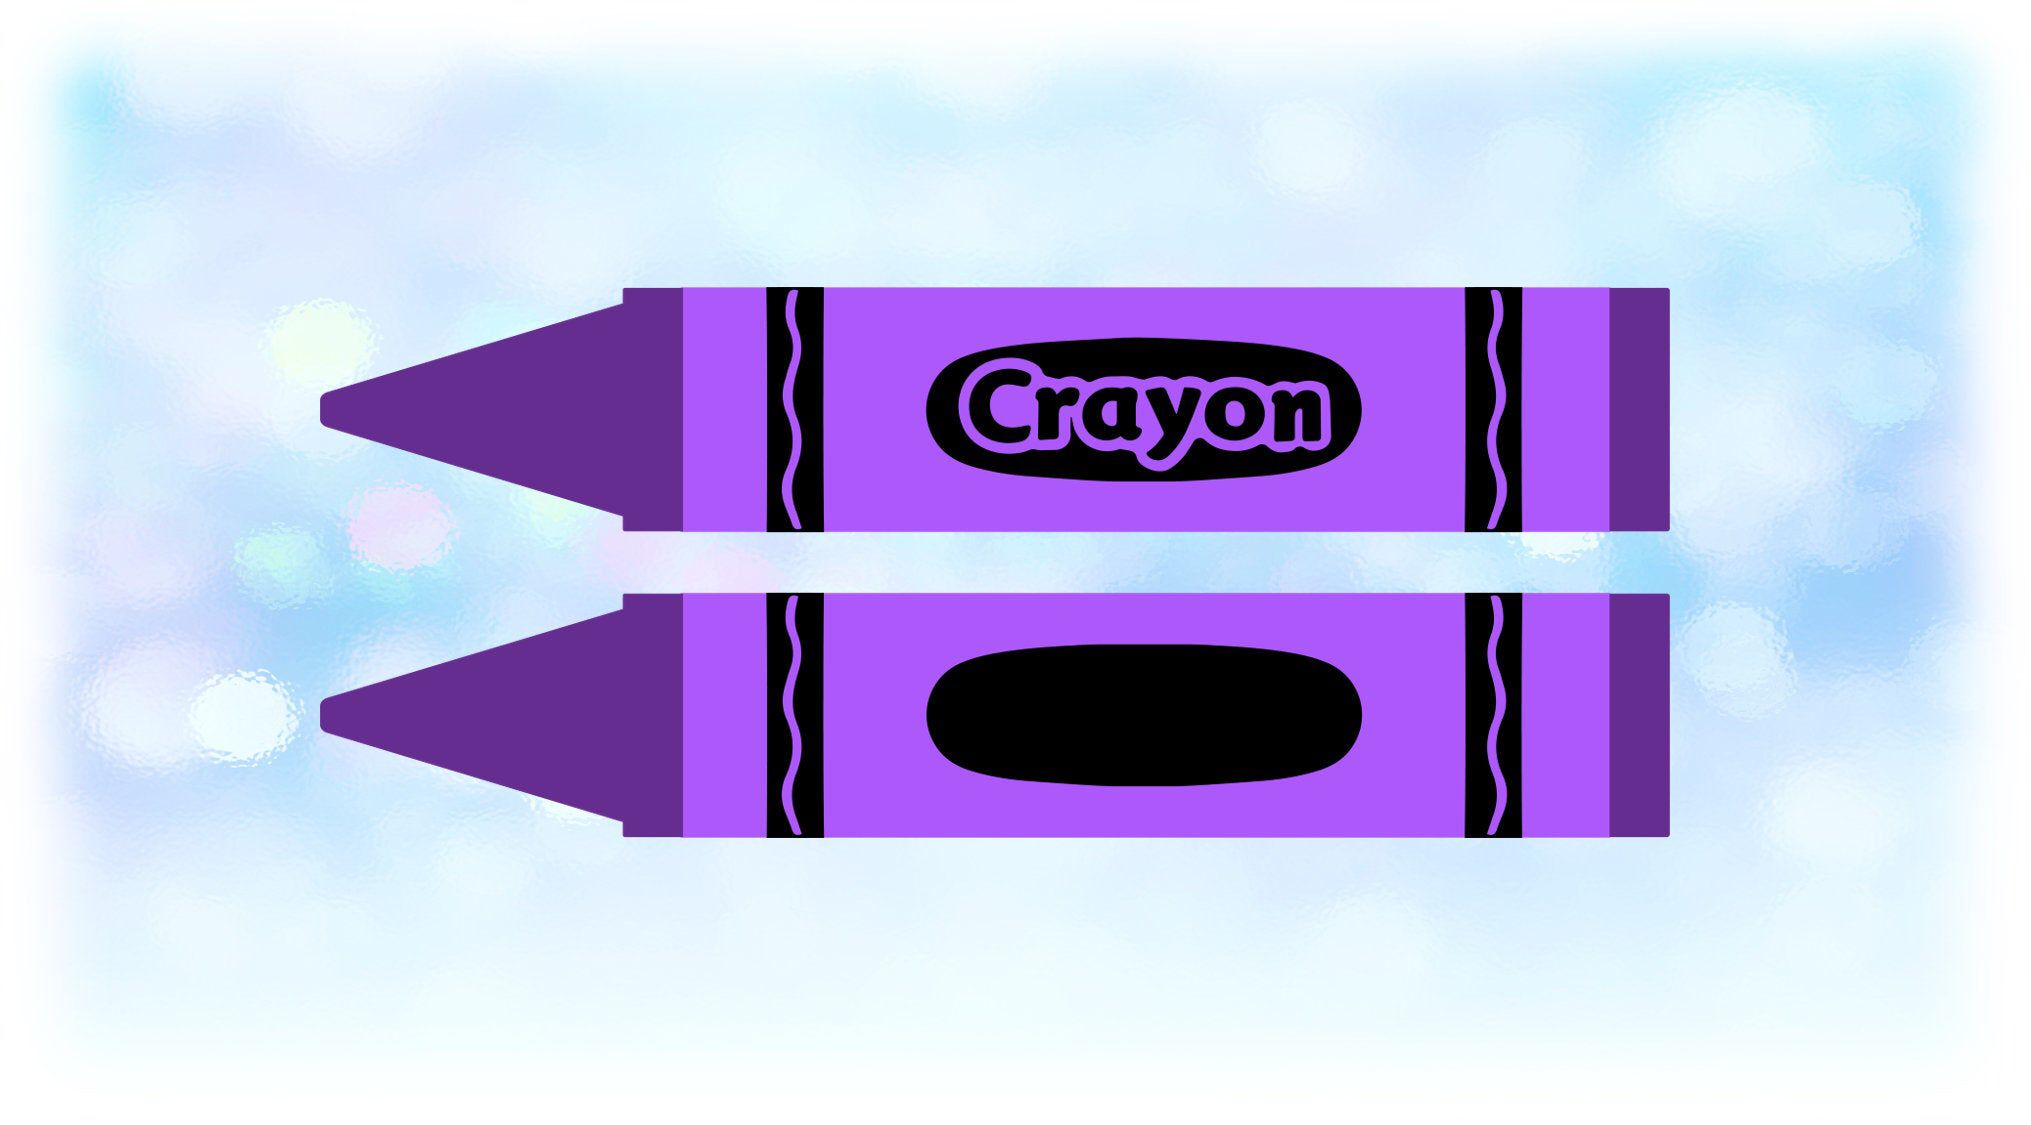 Word Clipart Large Purple Crayon With Word Crayon Etsy Purple Crayon Crayon Clip Art